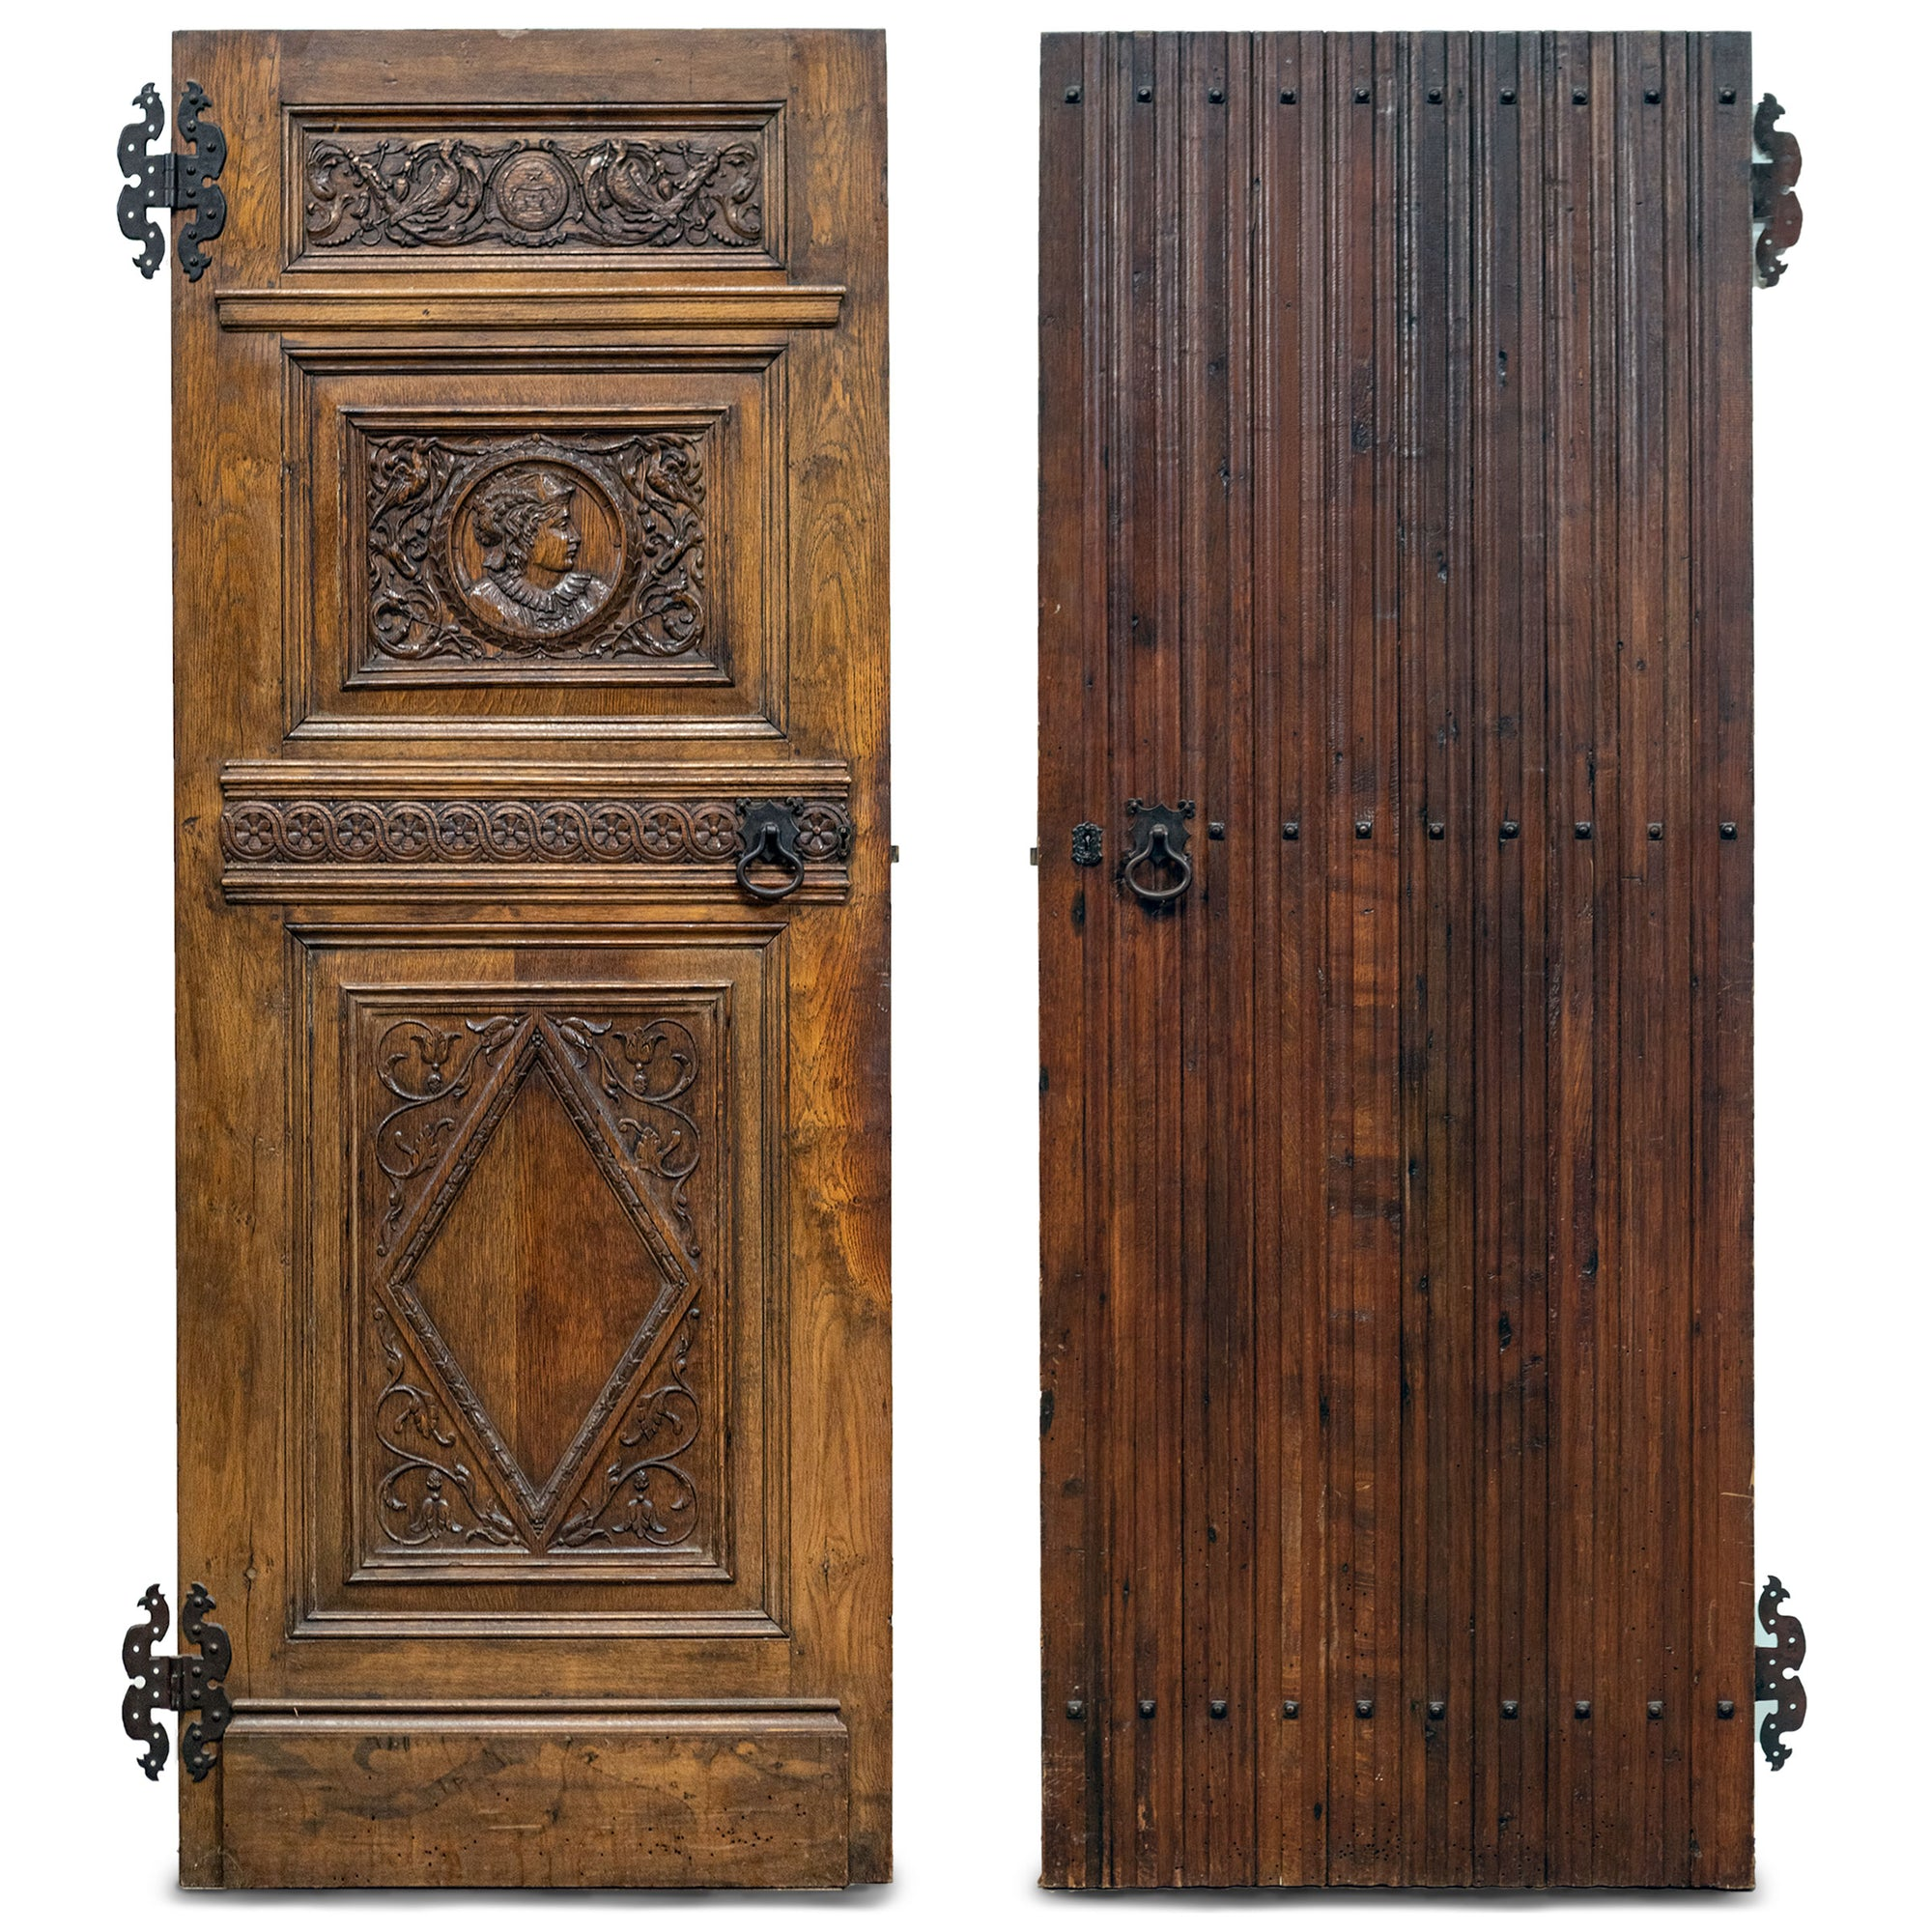 Antique Jacobean Style Carved Oak Panelled Door